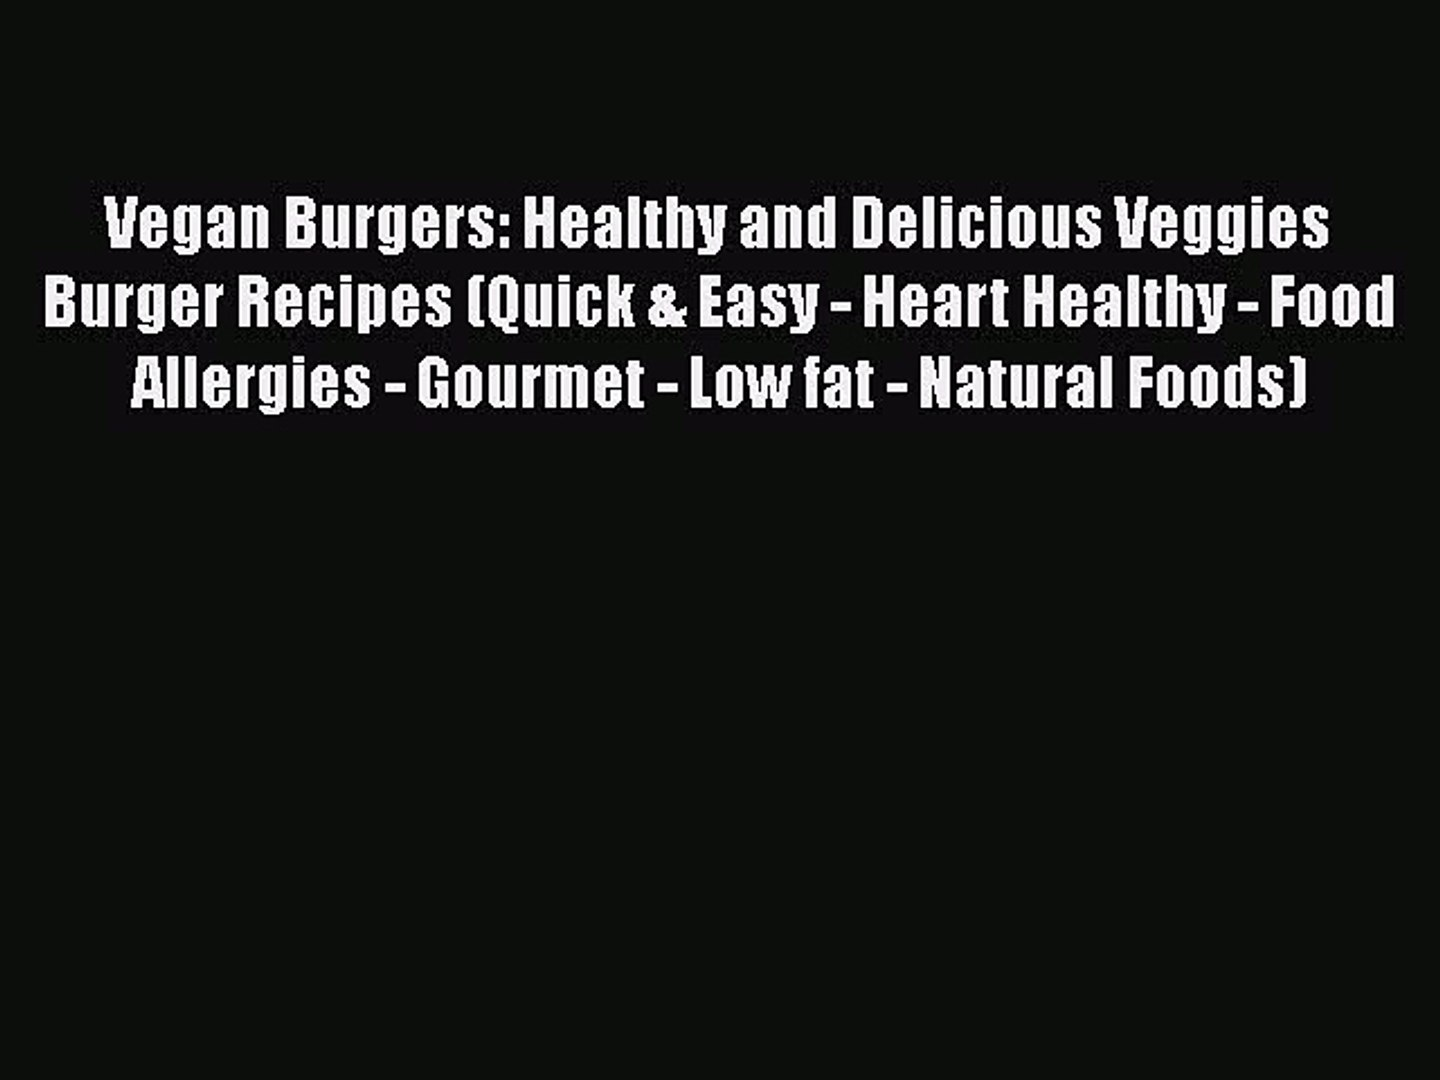 Pdf Vegan Burgers Healthy And Delicious Veggies Burger Recipes Quick Easy Heart Healthy Video Dailymotion